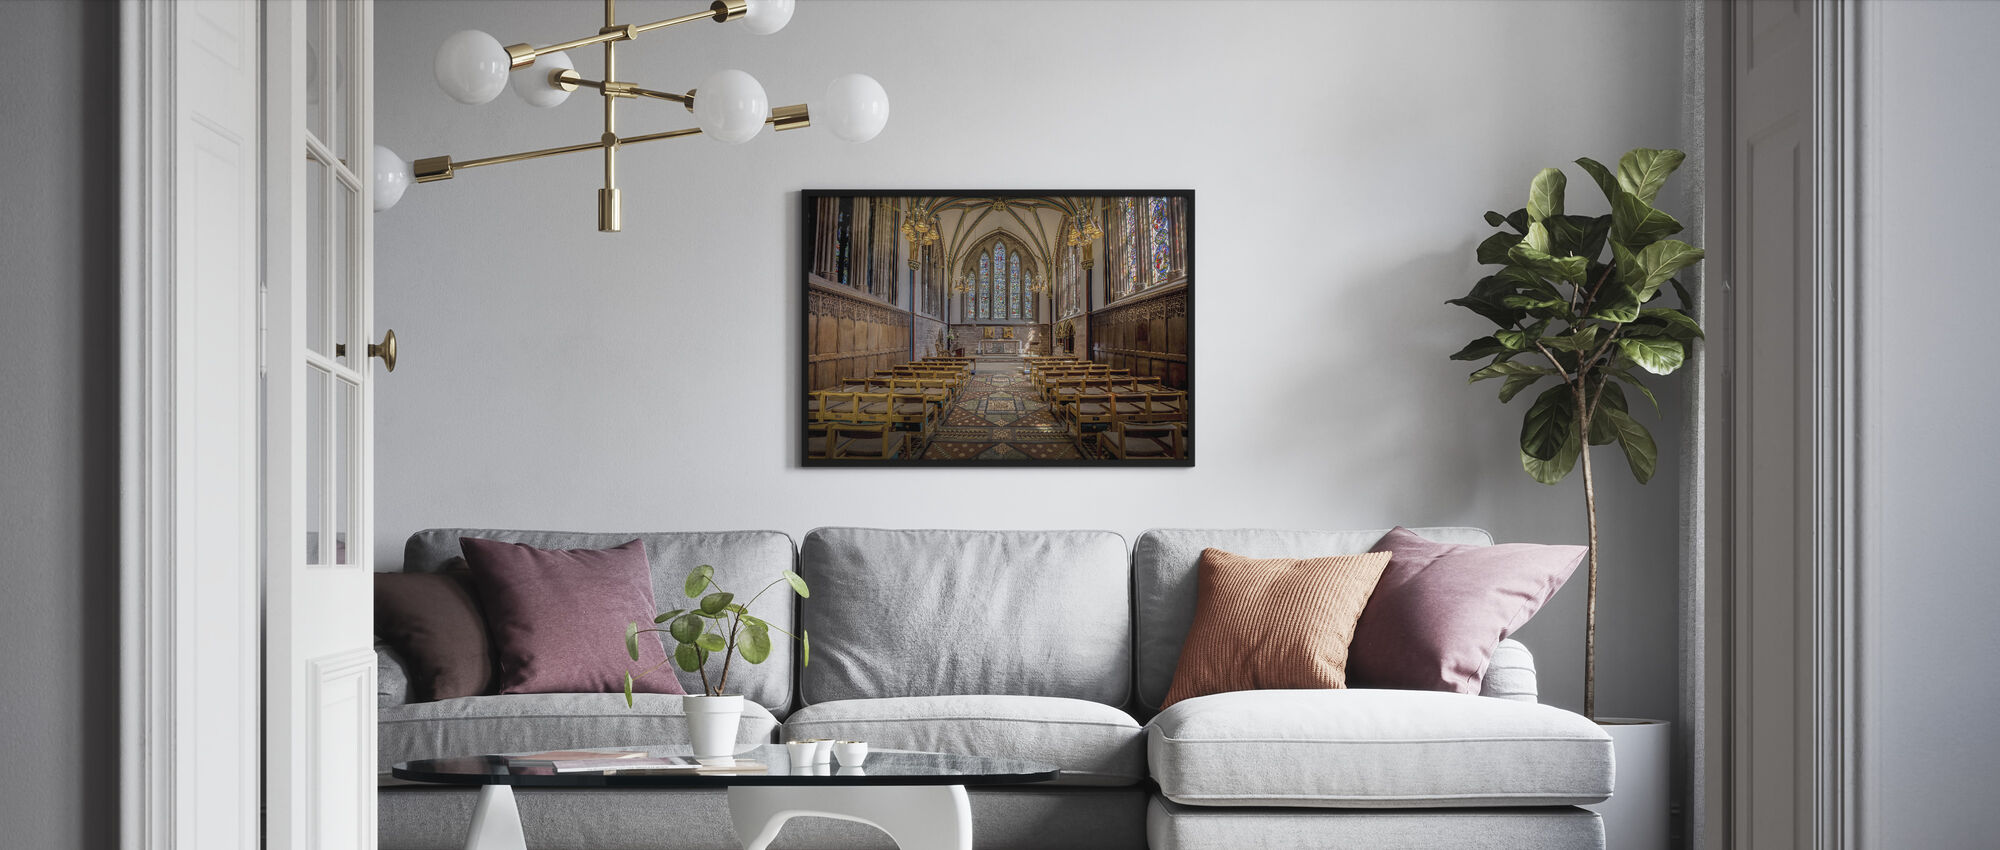 Lady Chapel - Framed print - Living Room